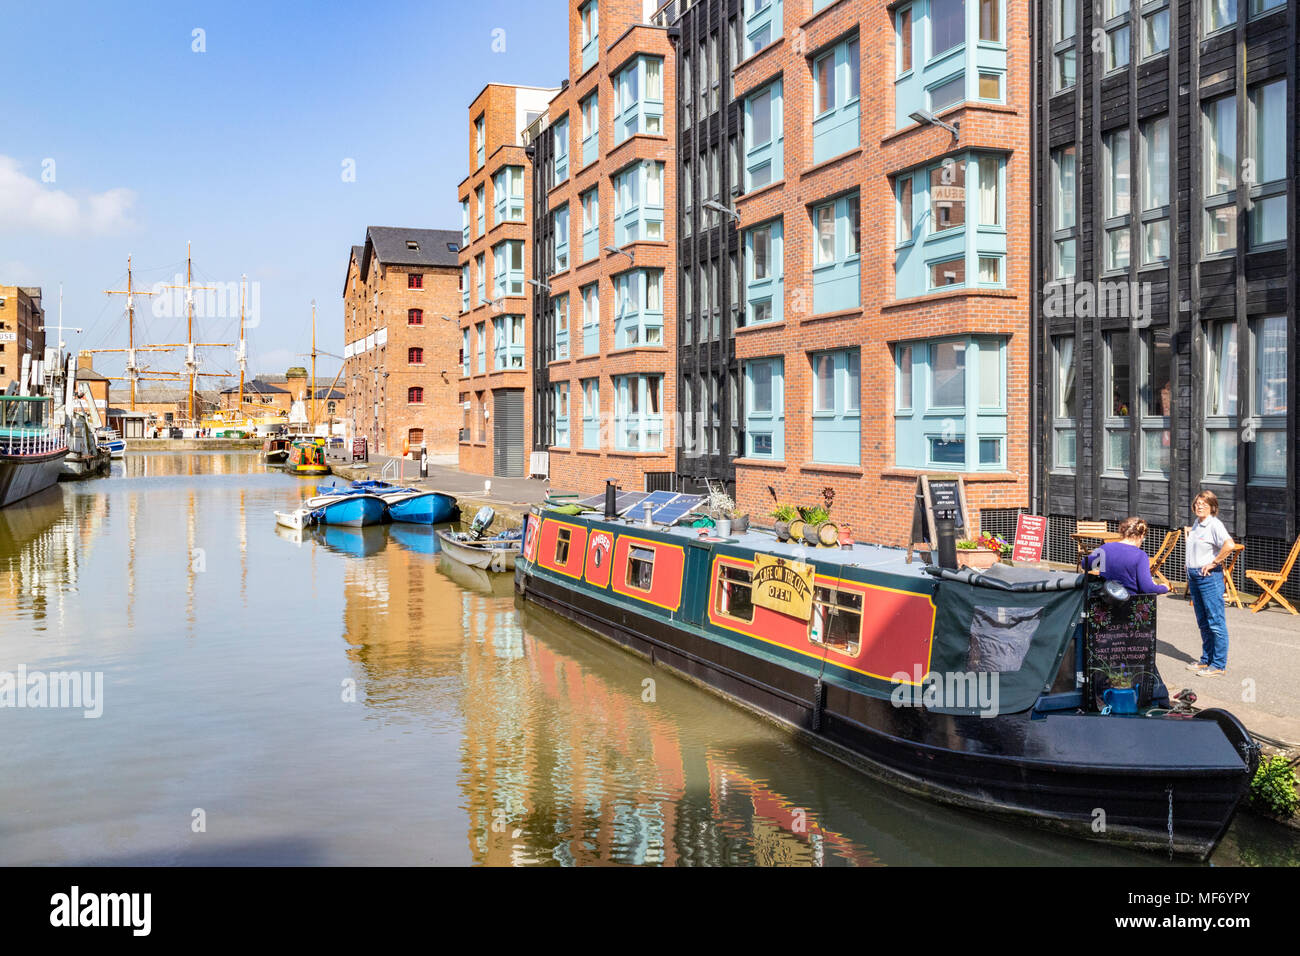 Cafe on the Cut in a longboat at Gloucester Docks, Gloucester UK - Stock Image